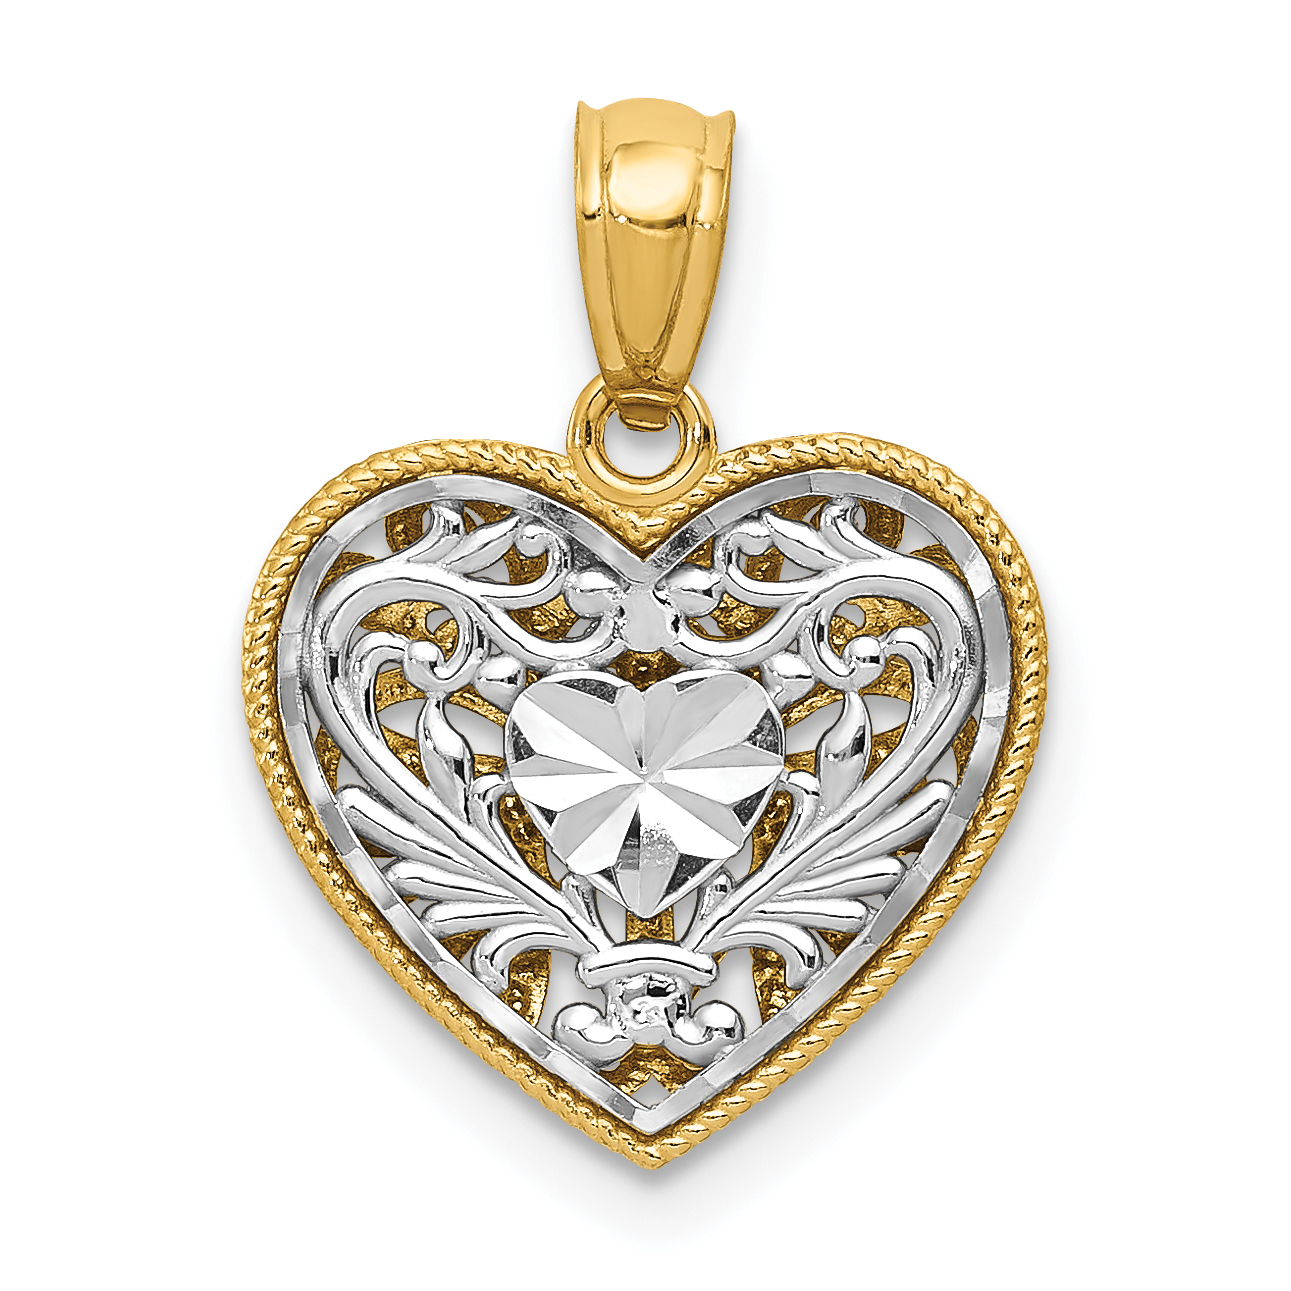 14k Two Tone Yellow Gold Reversible Filigree Heart Pendant Charm Necklace Love Fine Jewelry Gifts For Women For Her - image 3 de 4